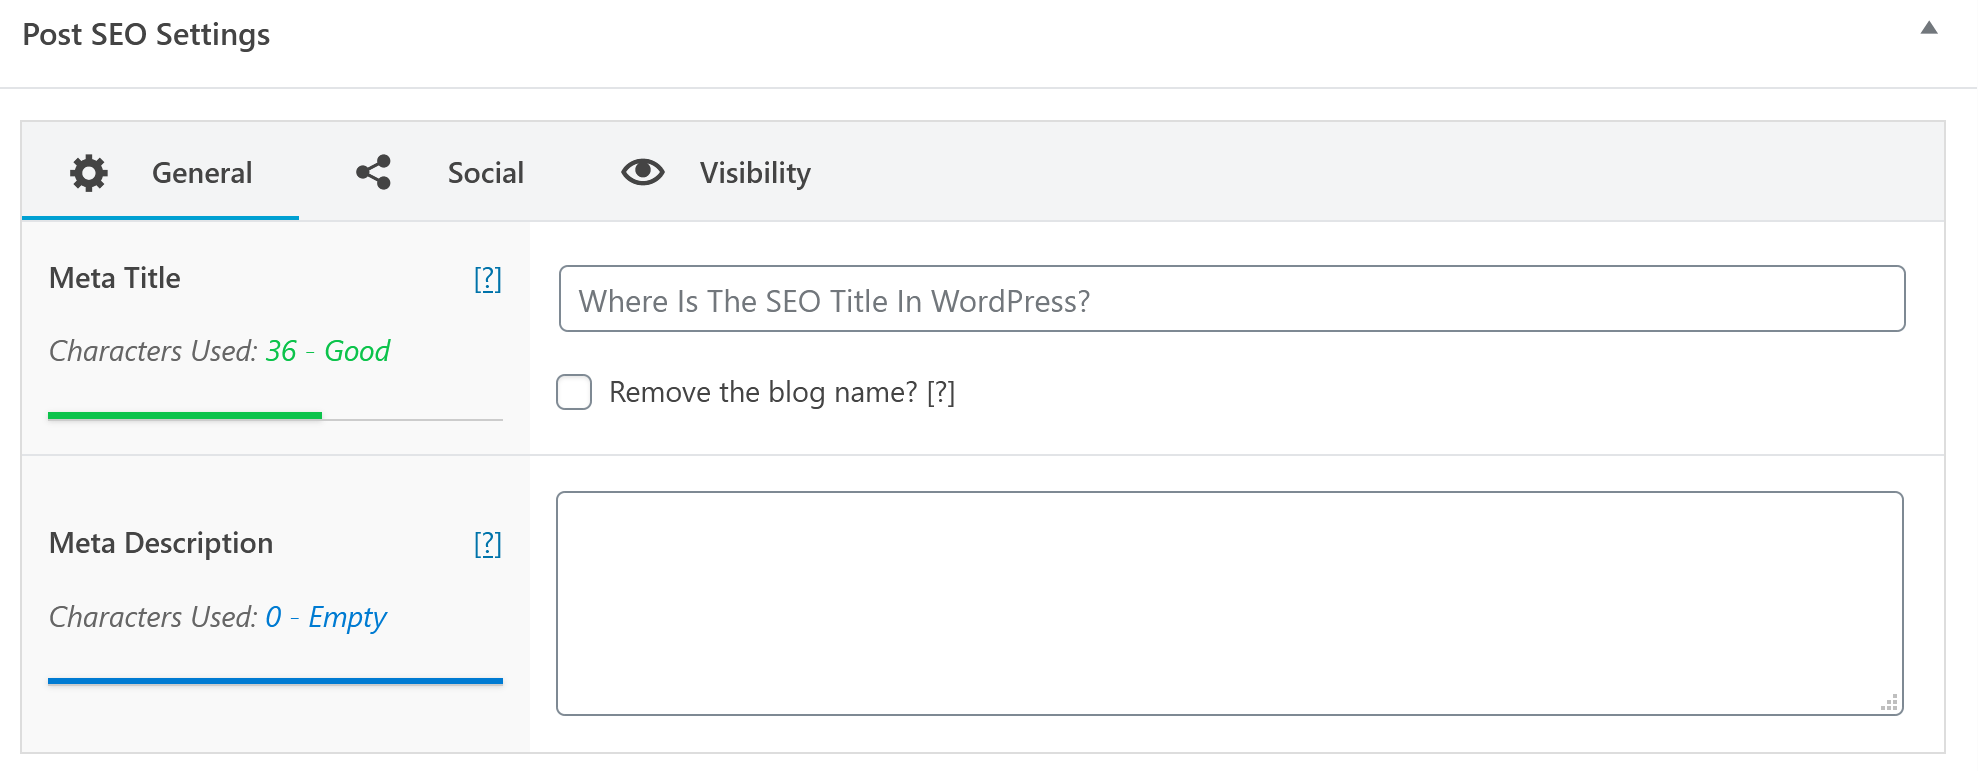 WordPress SEO Title example - meta title and description